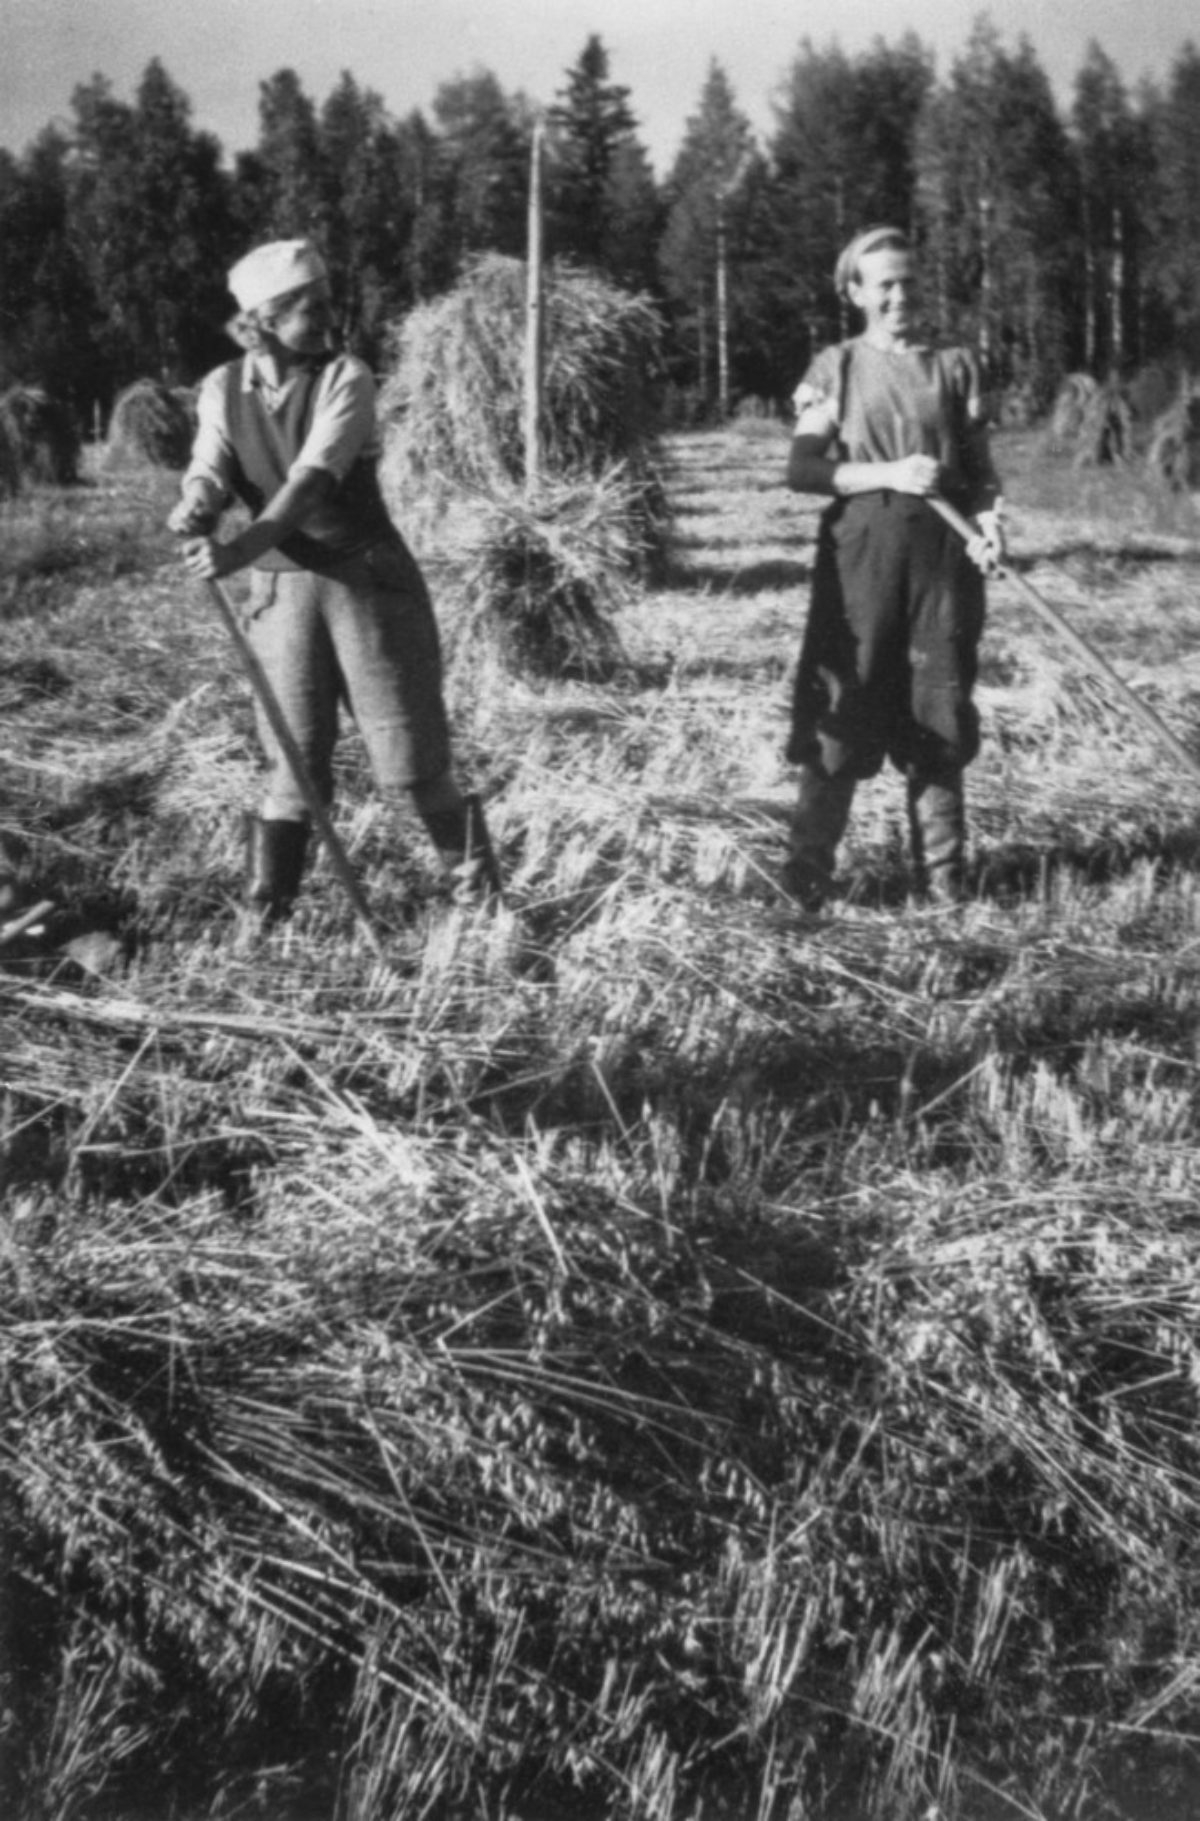 Workers stationed at Aurala Manor in Hollola in the Manor's oat field 1944 (mirror image of the original). Photo: Kirsti Järvinen / Picture Collections of Finnish Heritage Agency